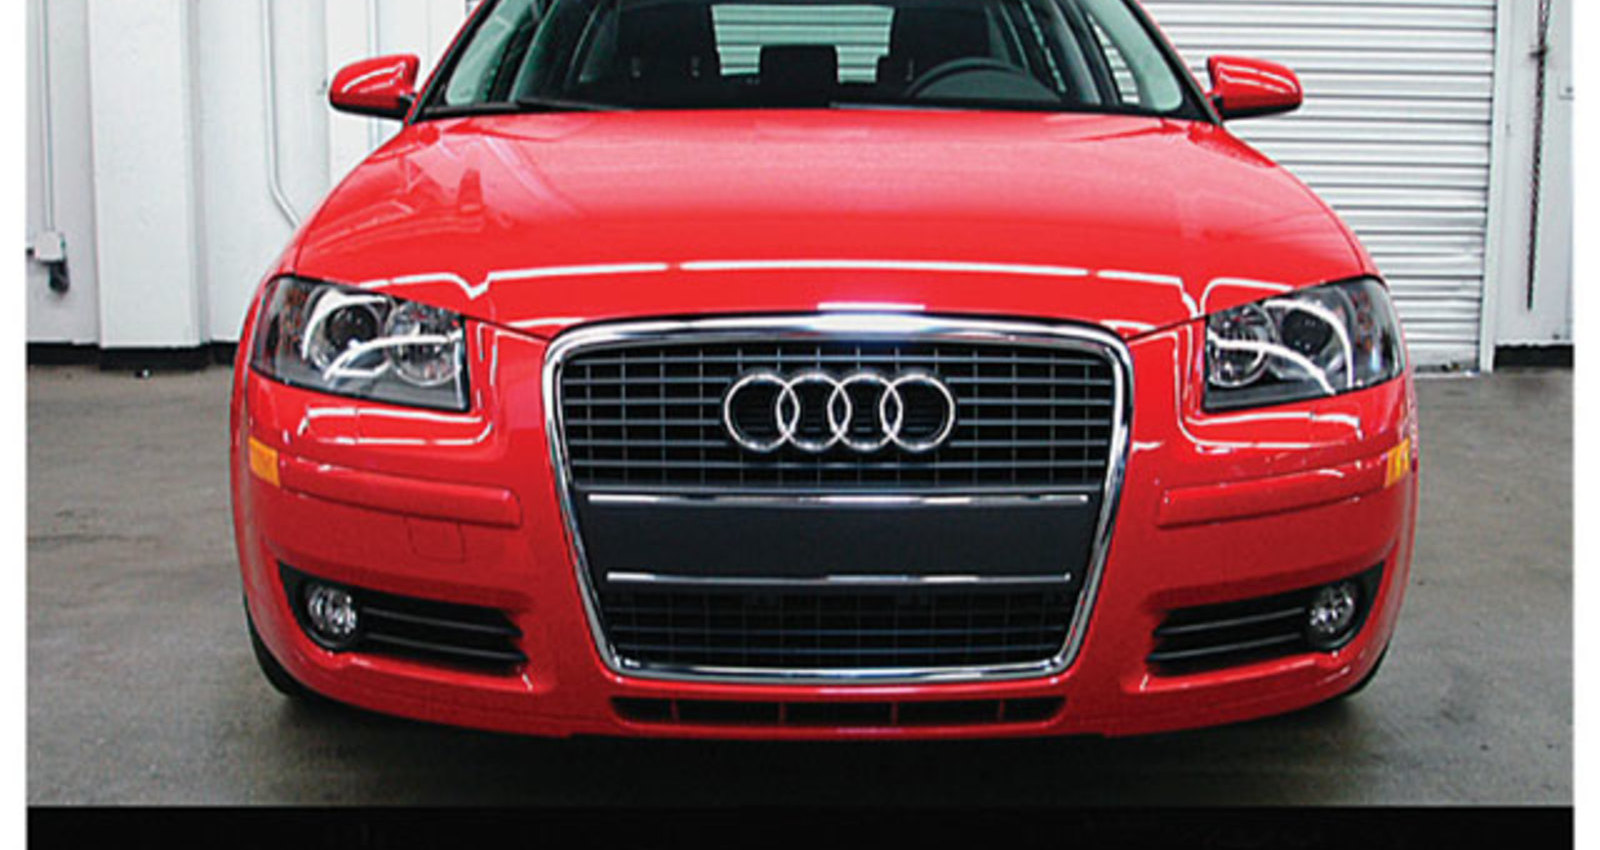 Audi A3 Art of the H3ist